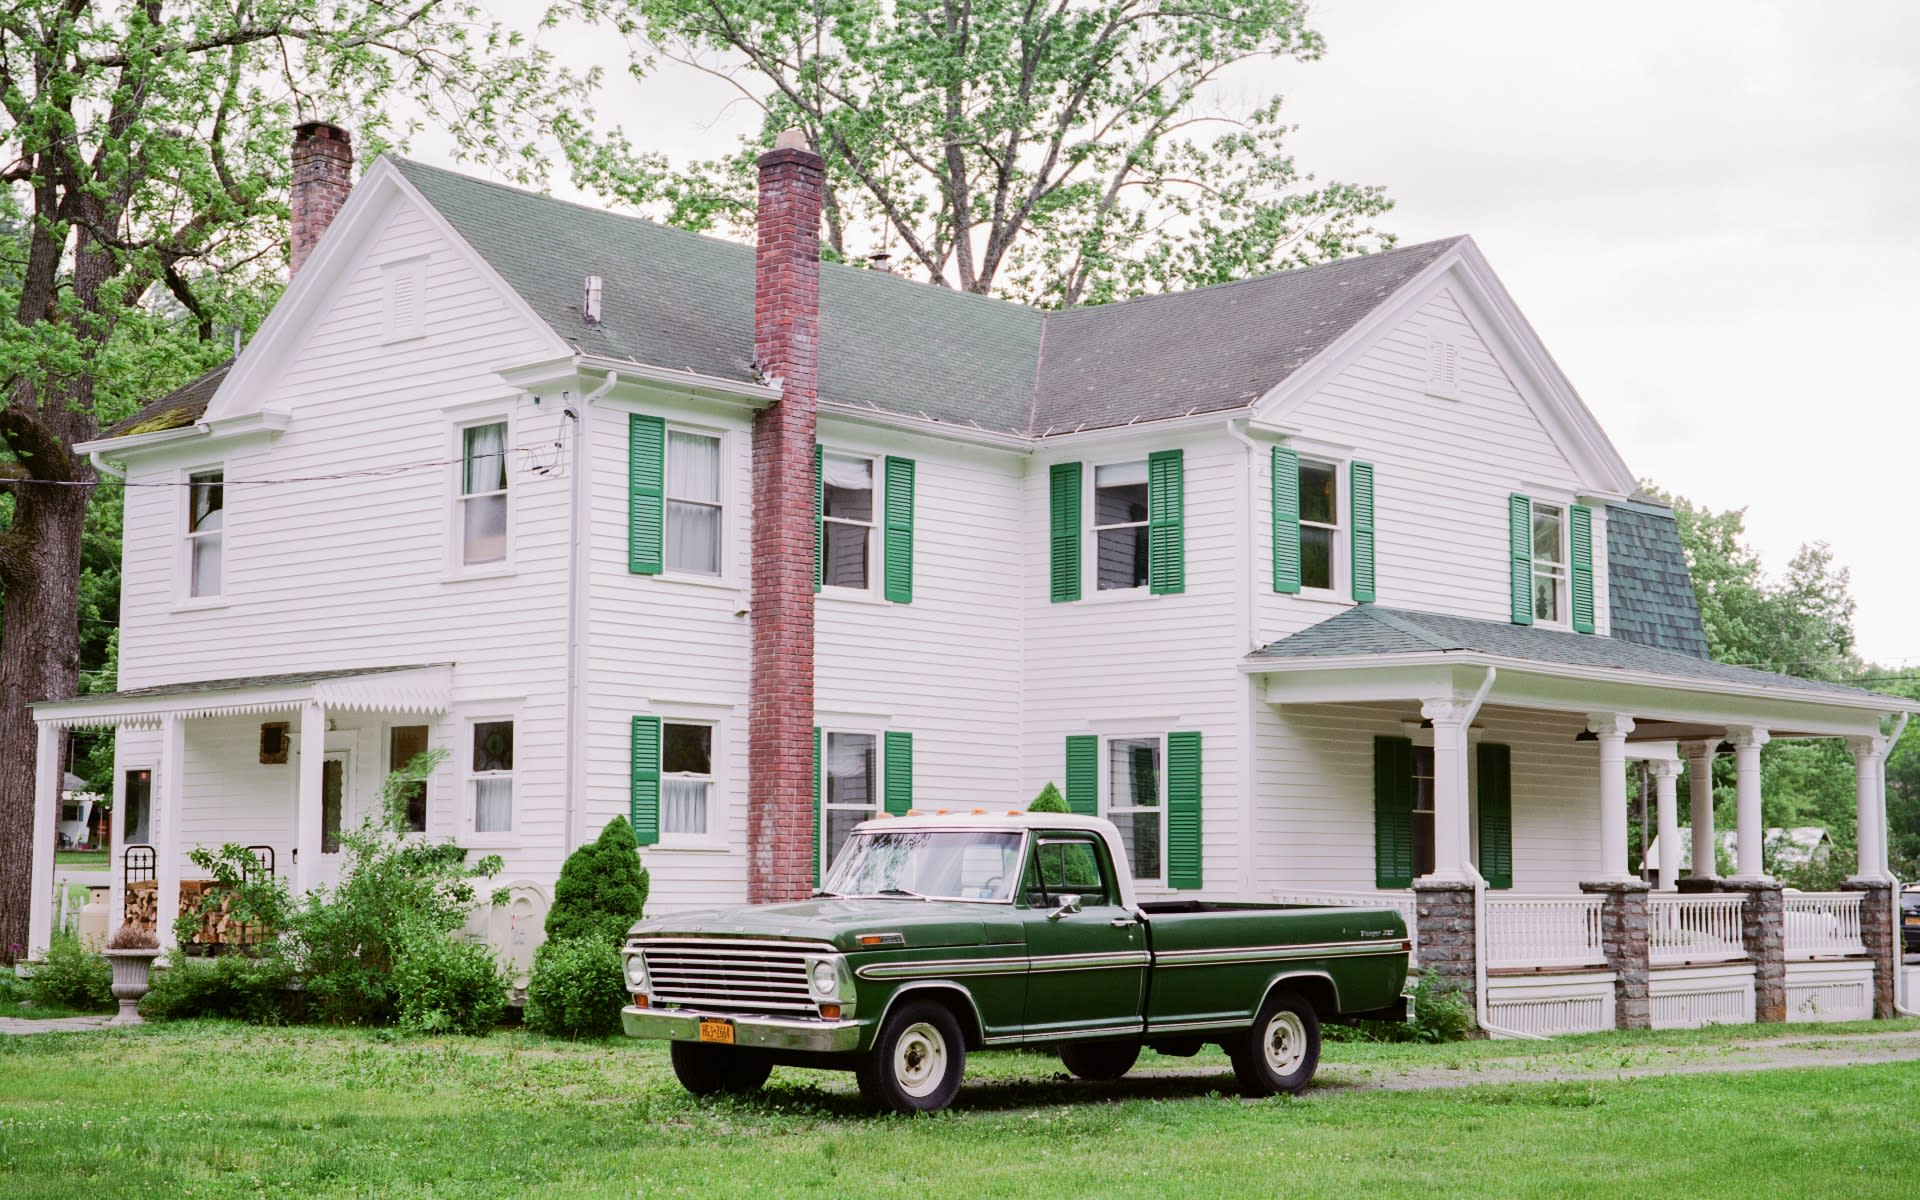 Buying in the Catskills? Six Questions to Consider